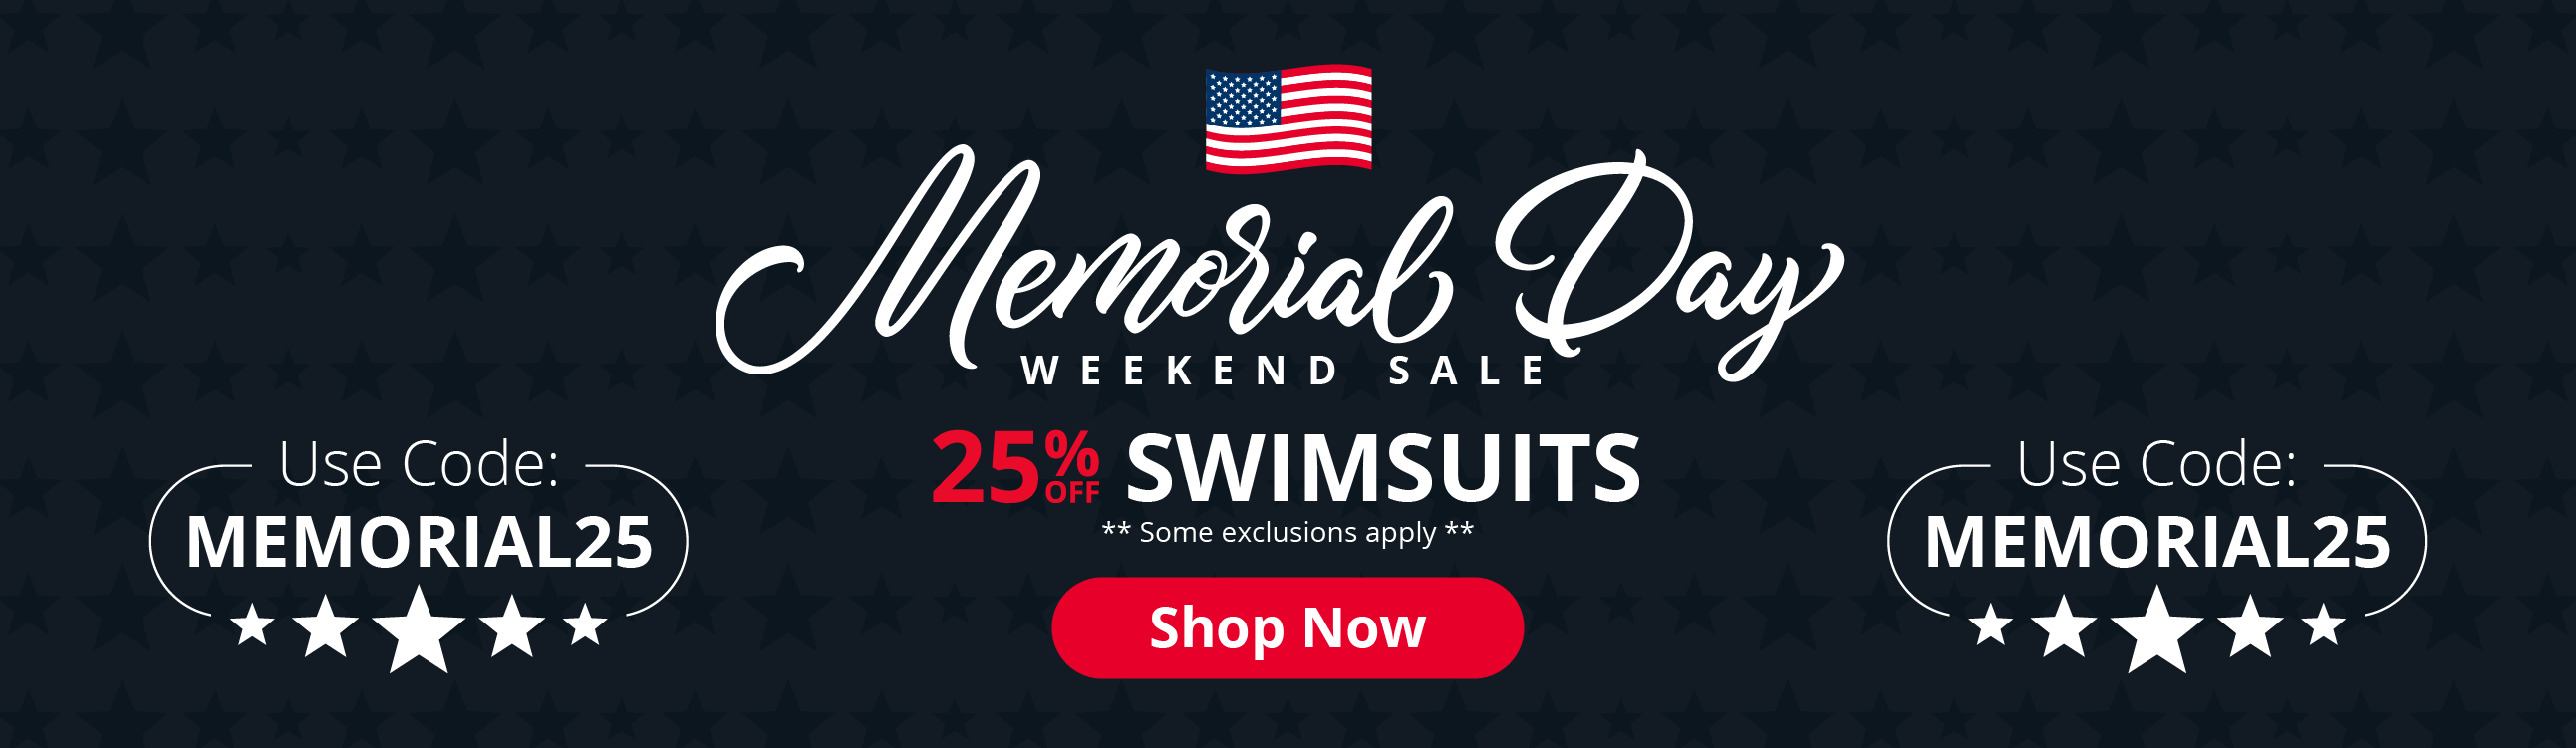 AAS Memorial Day Sale | 25% OFF Swimsuits | Use Code: MEMORIAL25